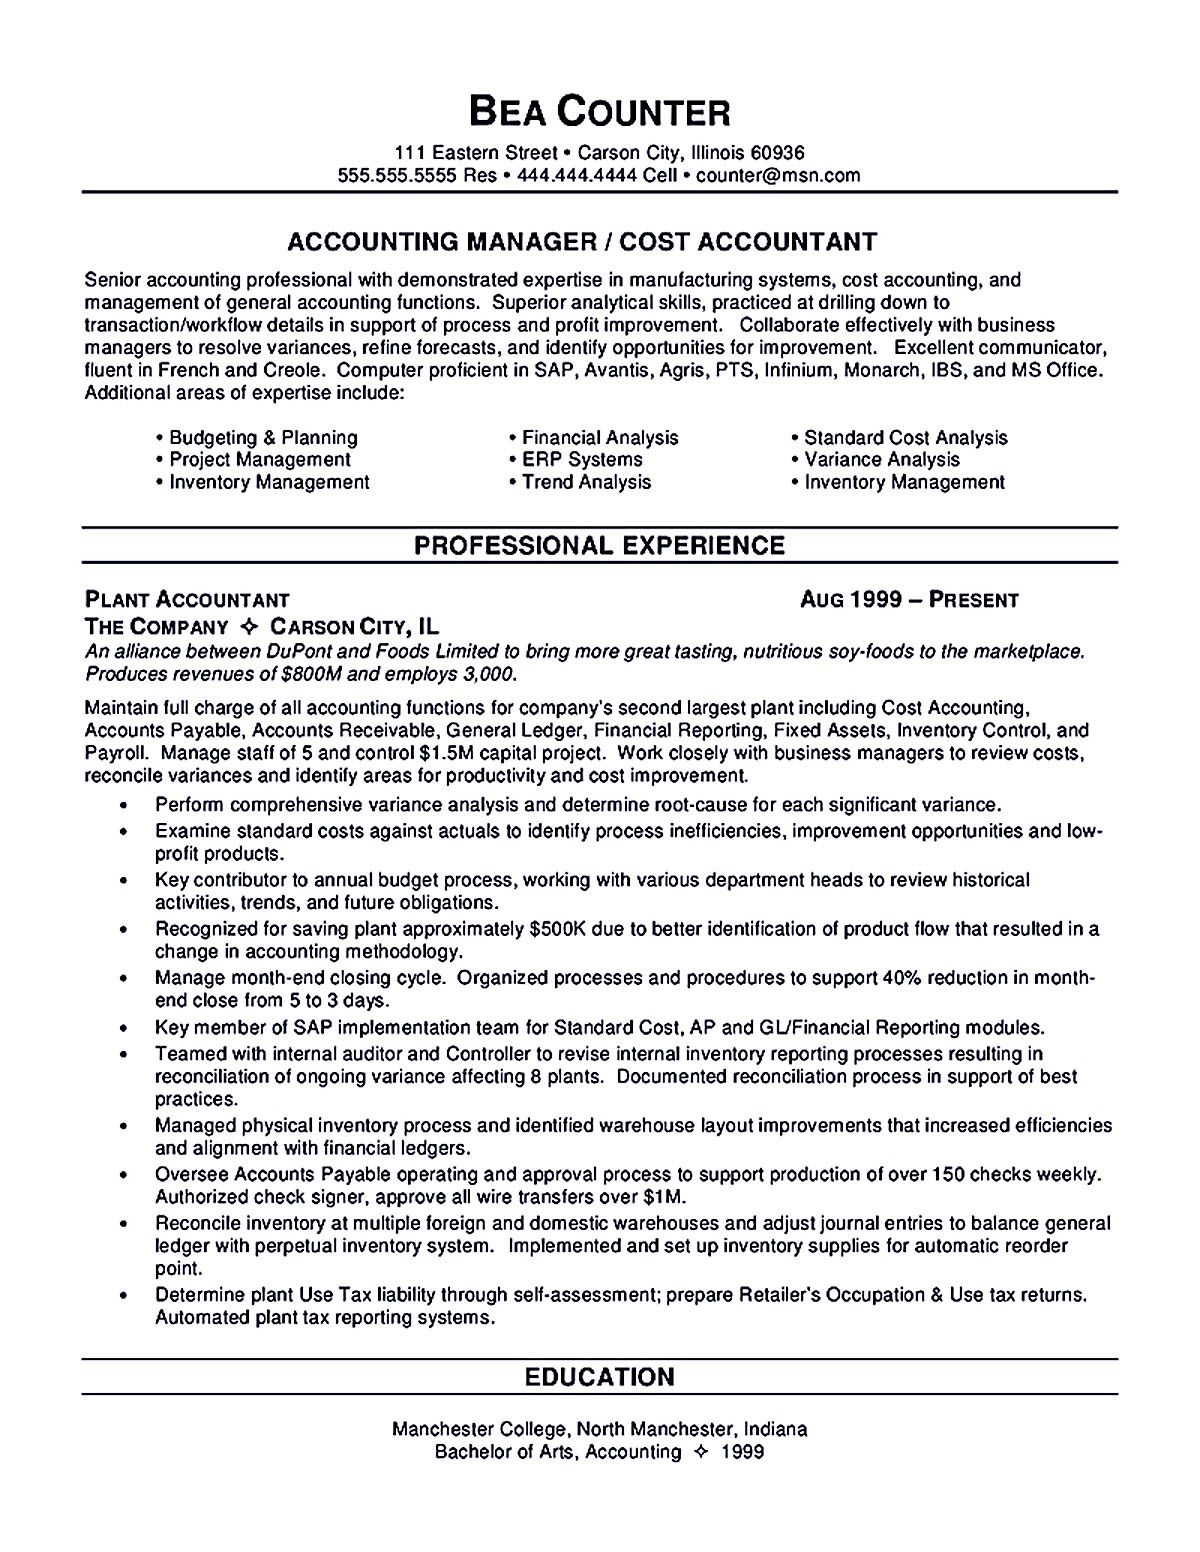 Accounts Payable Resume Template Accountant Resume Template Here Helps You  In Boosting Your Career As An Accountant Because You Will Get Hired Soon If  You ...